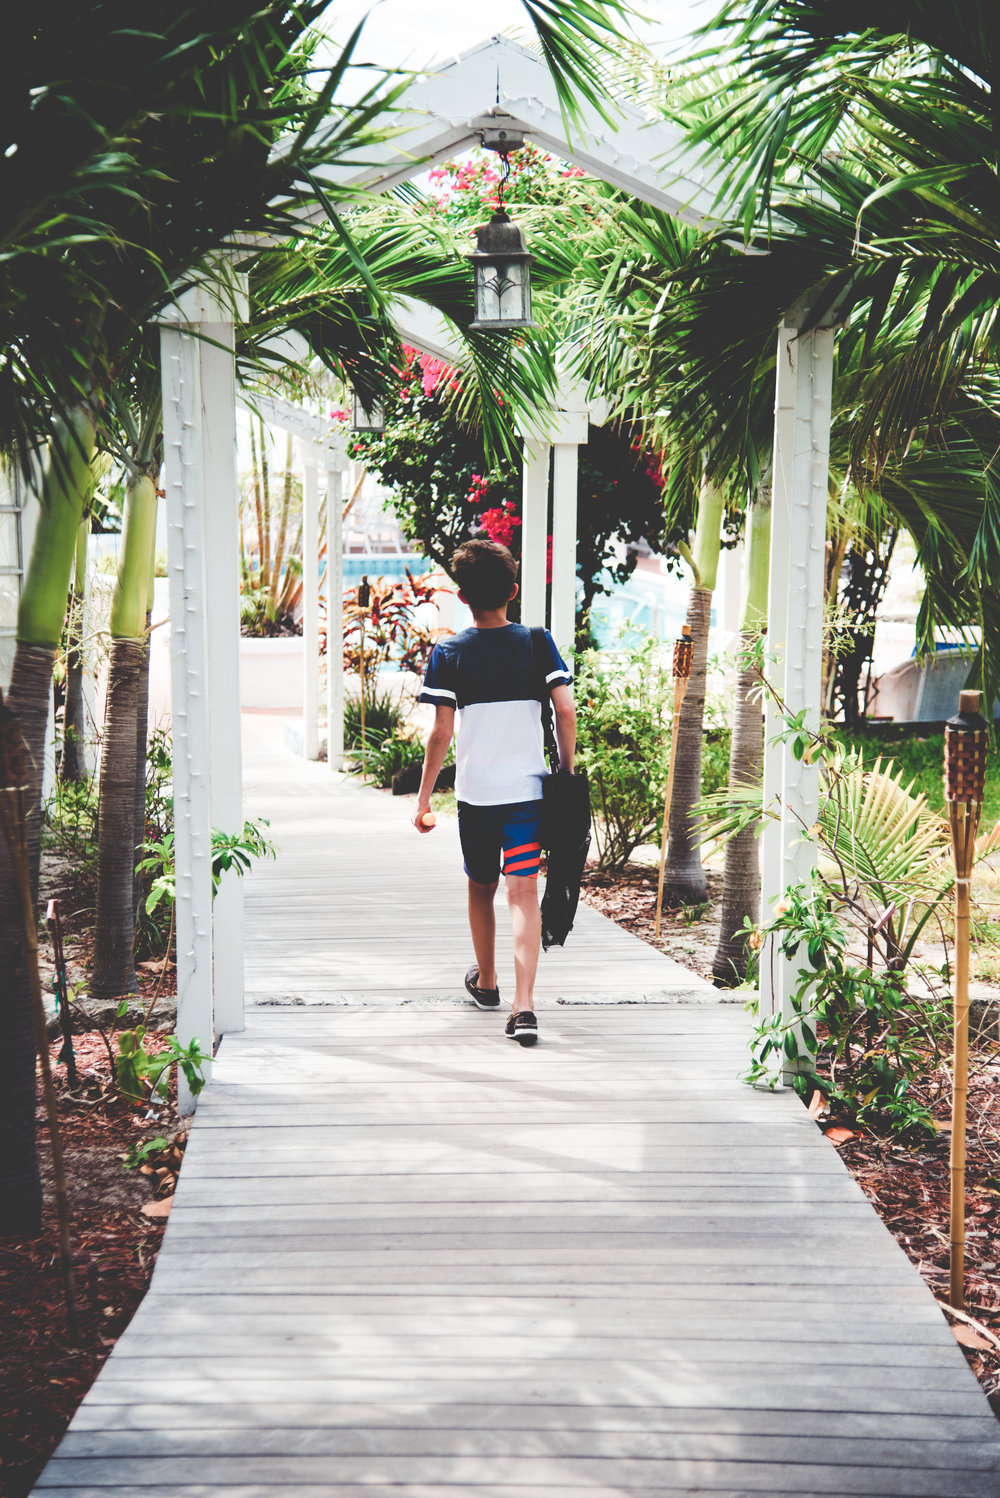 Noah Walking in Cool Path to Beach in Bahamas.jpg